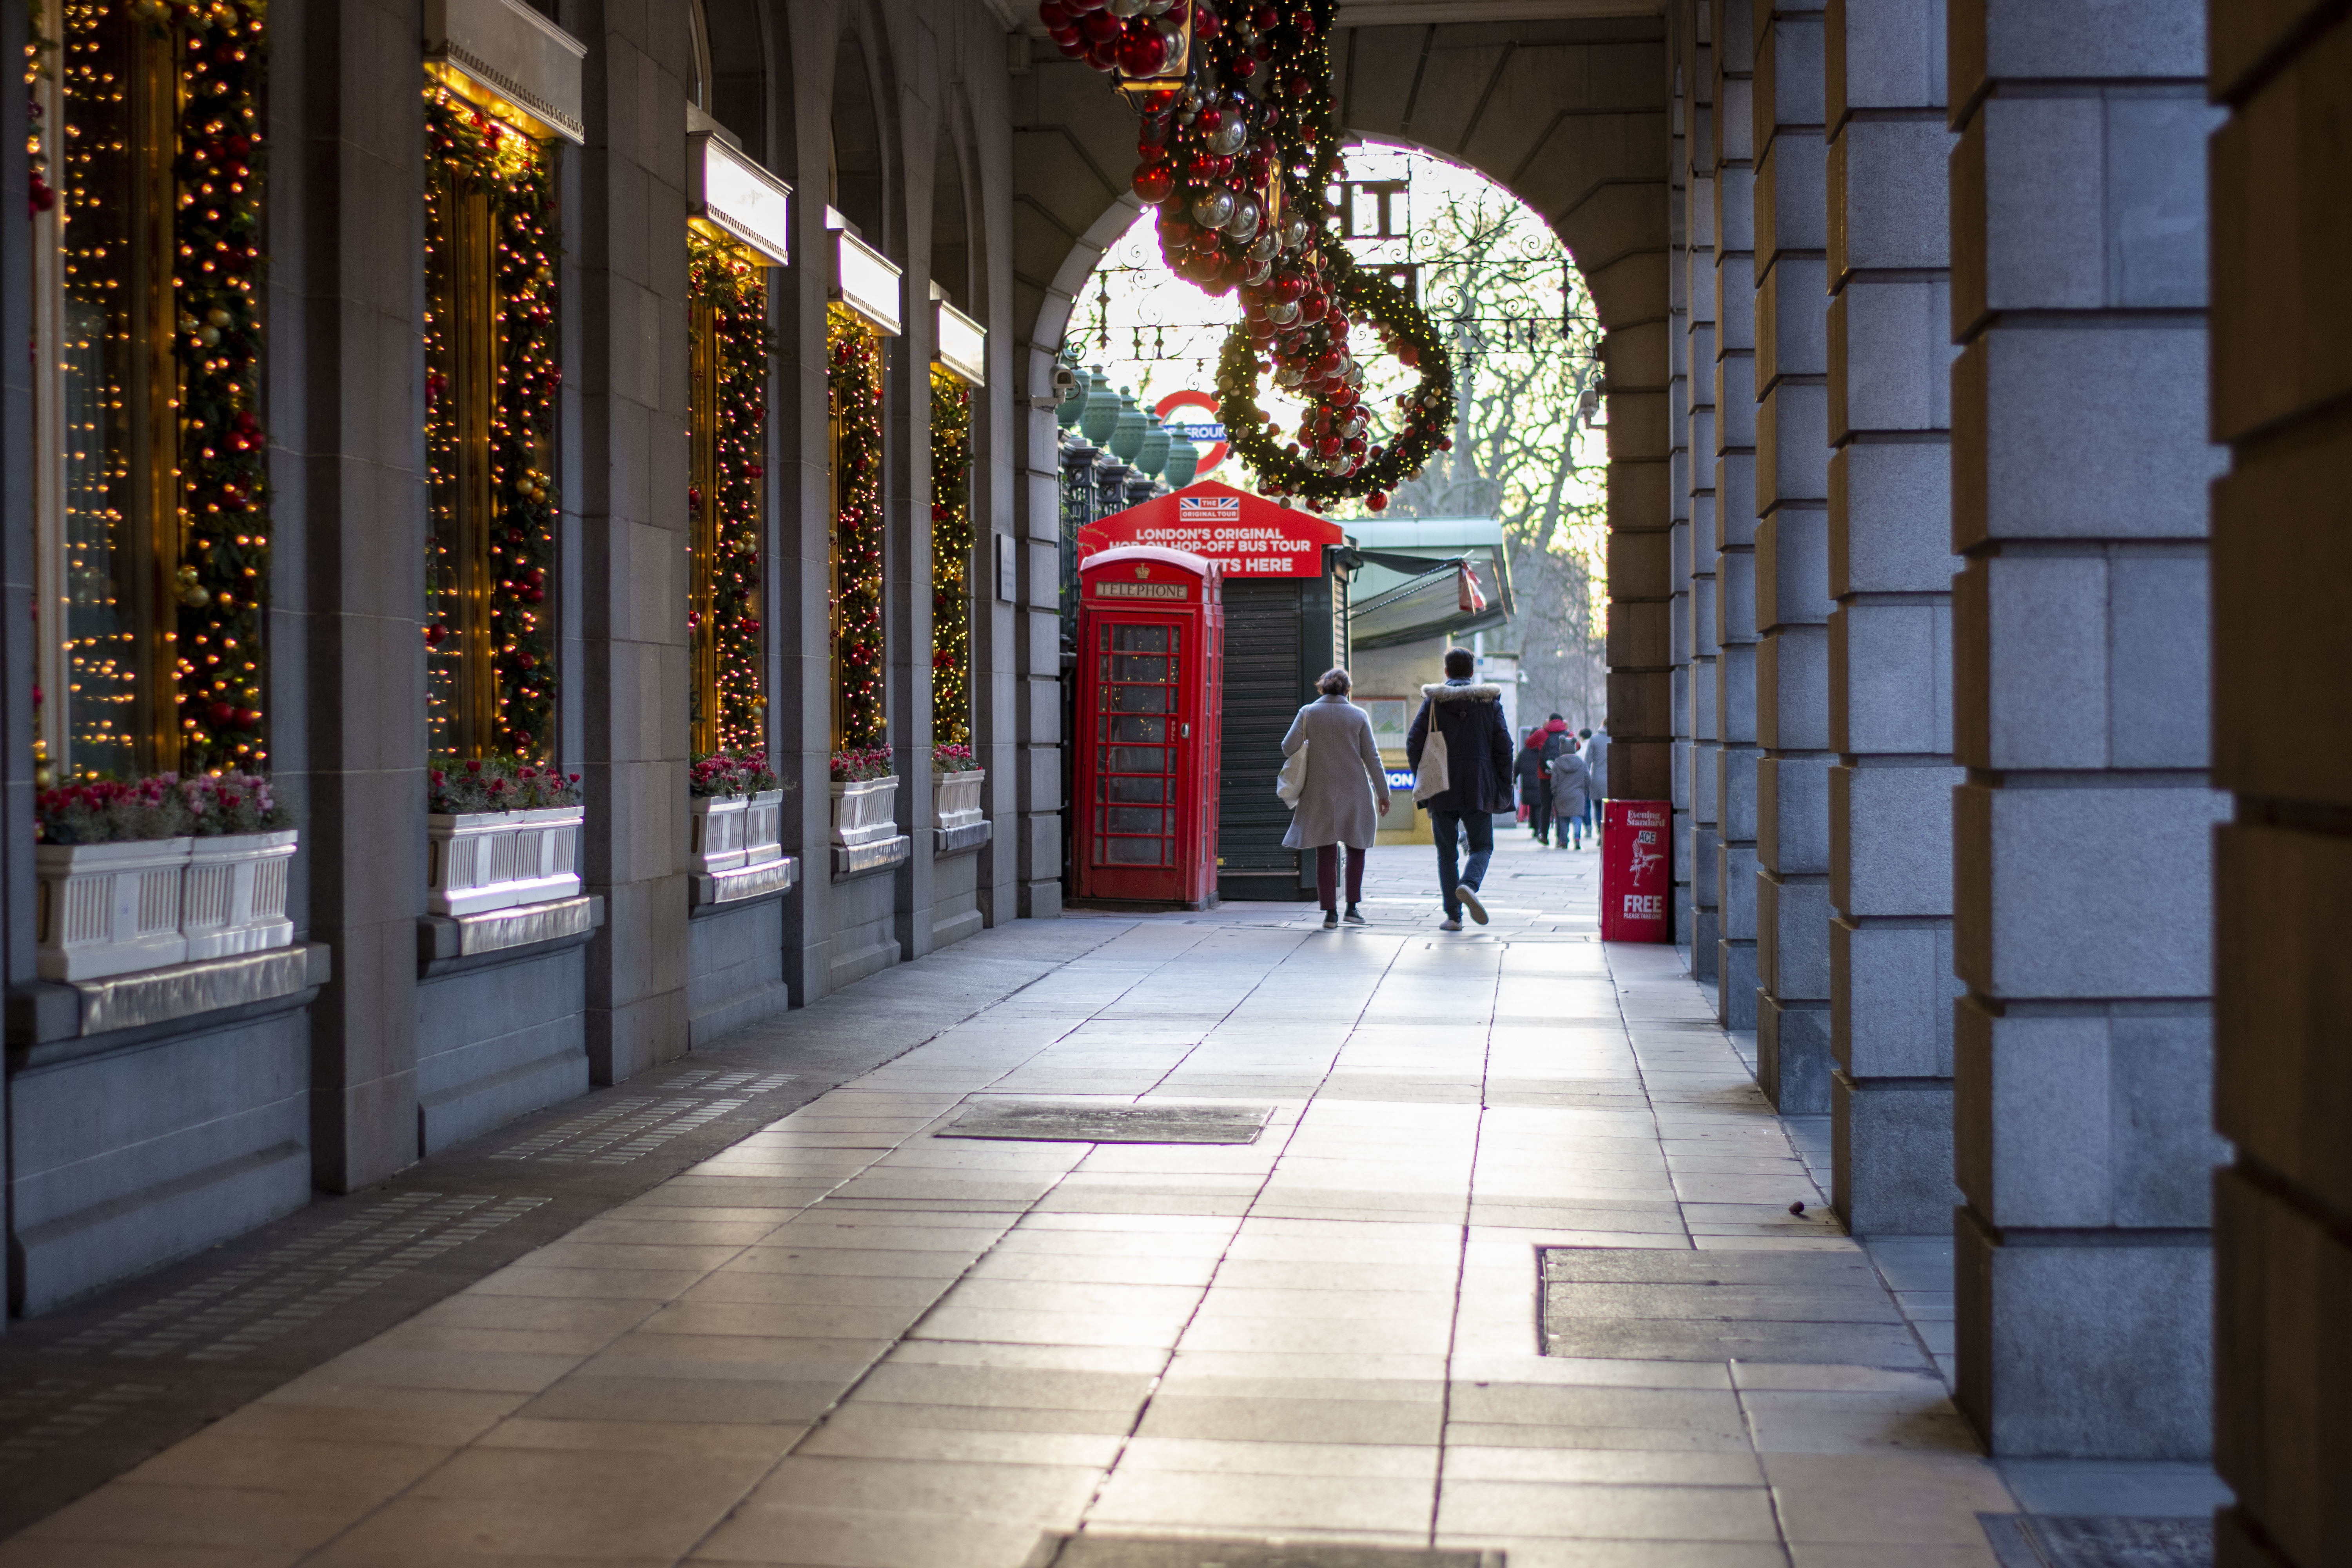 A couple walks past Christmas decorations at the Ritz London. Under tier four restrictions, pubs and restaurants will close, as well as �non-essential� retail. (Photo by Pietro Recchia / SOPA Images/Sipa USA)